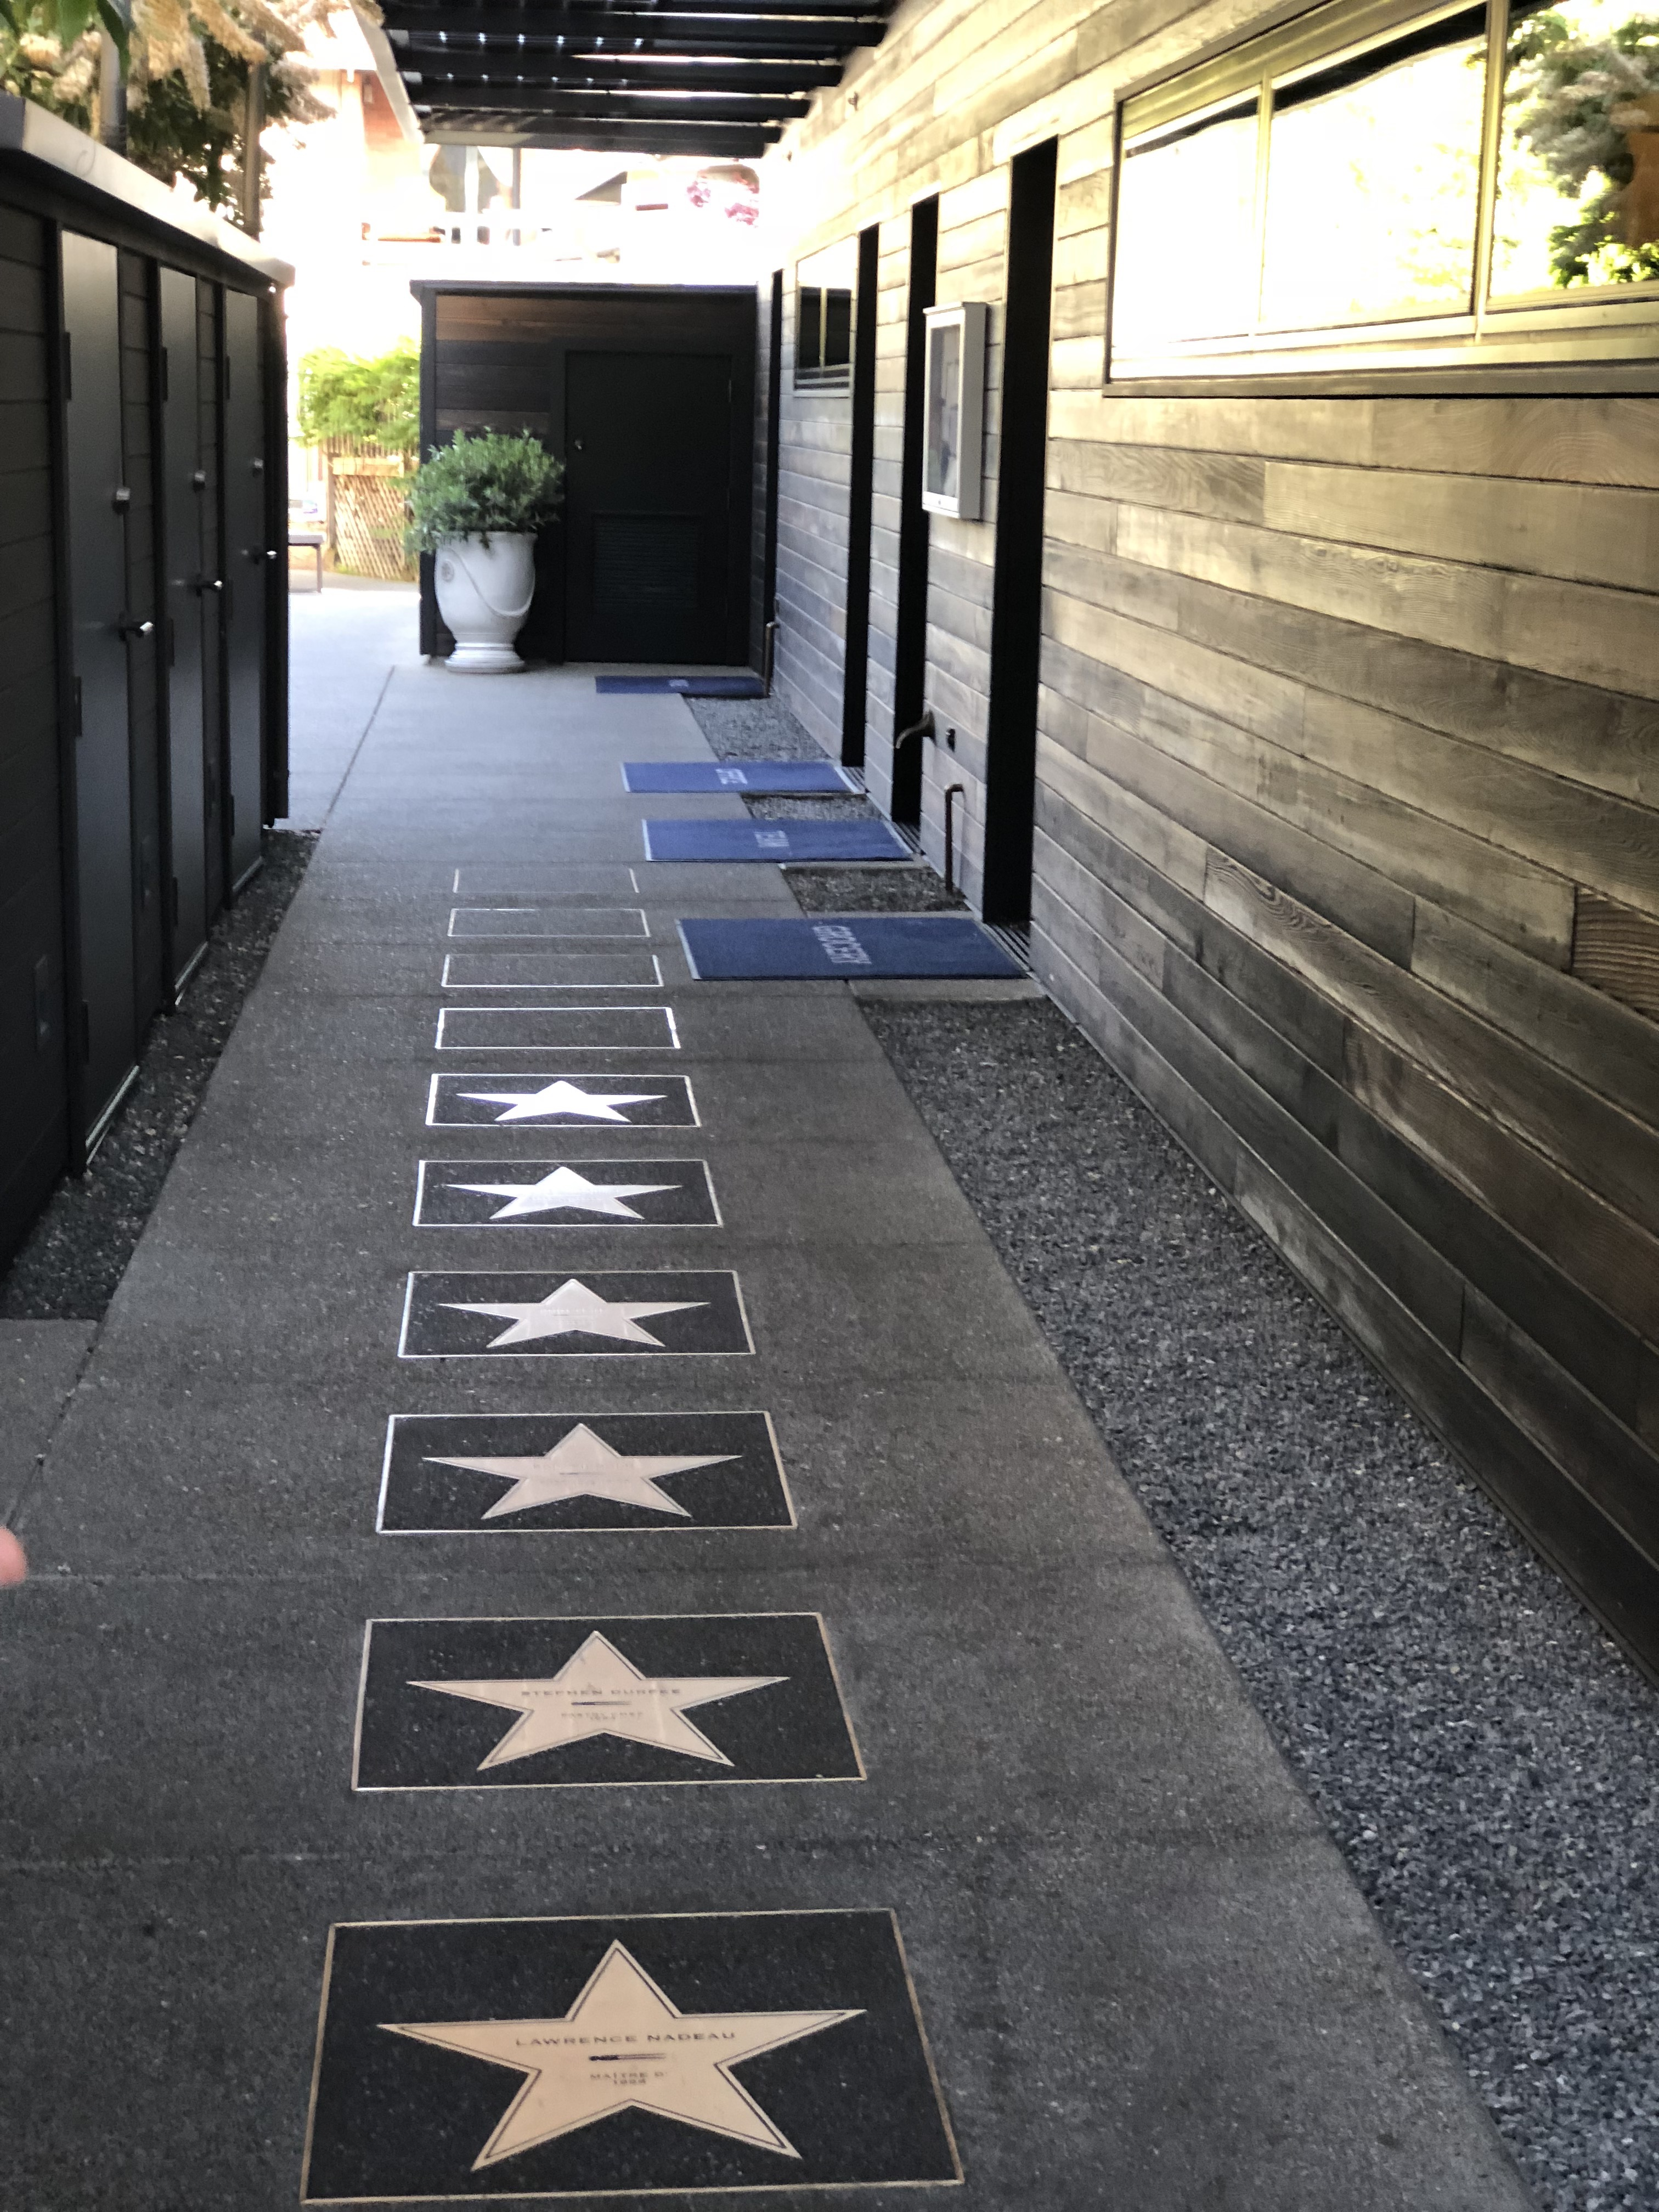 The stars at the French Laundry